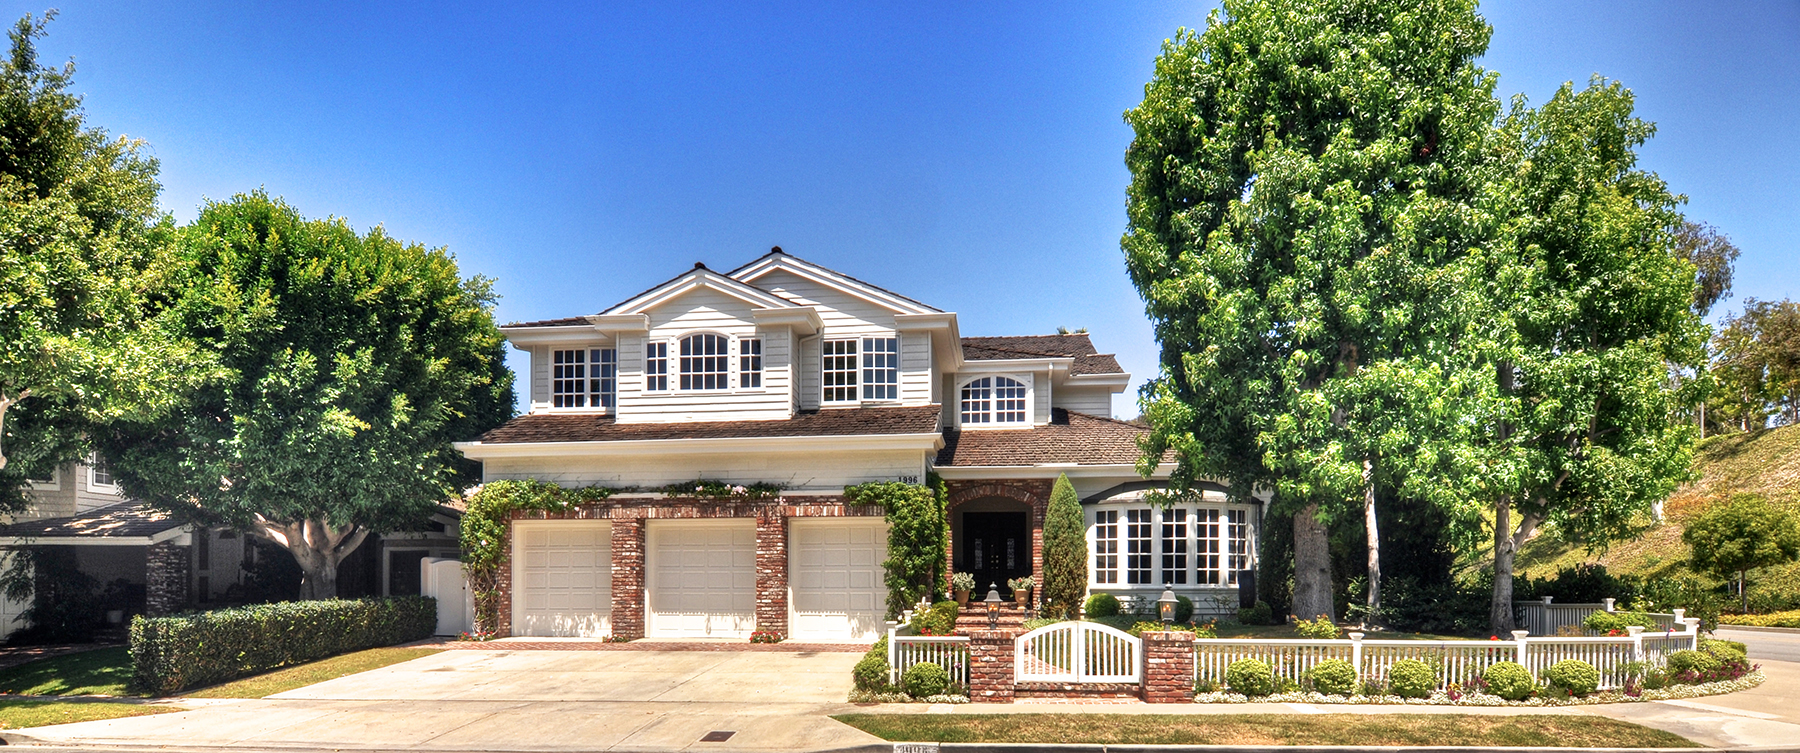 Single Family Home for Sale at 1996 Port Nelson Newport Beach, California 92660 United States